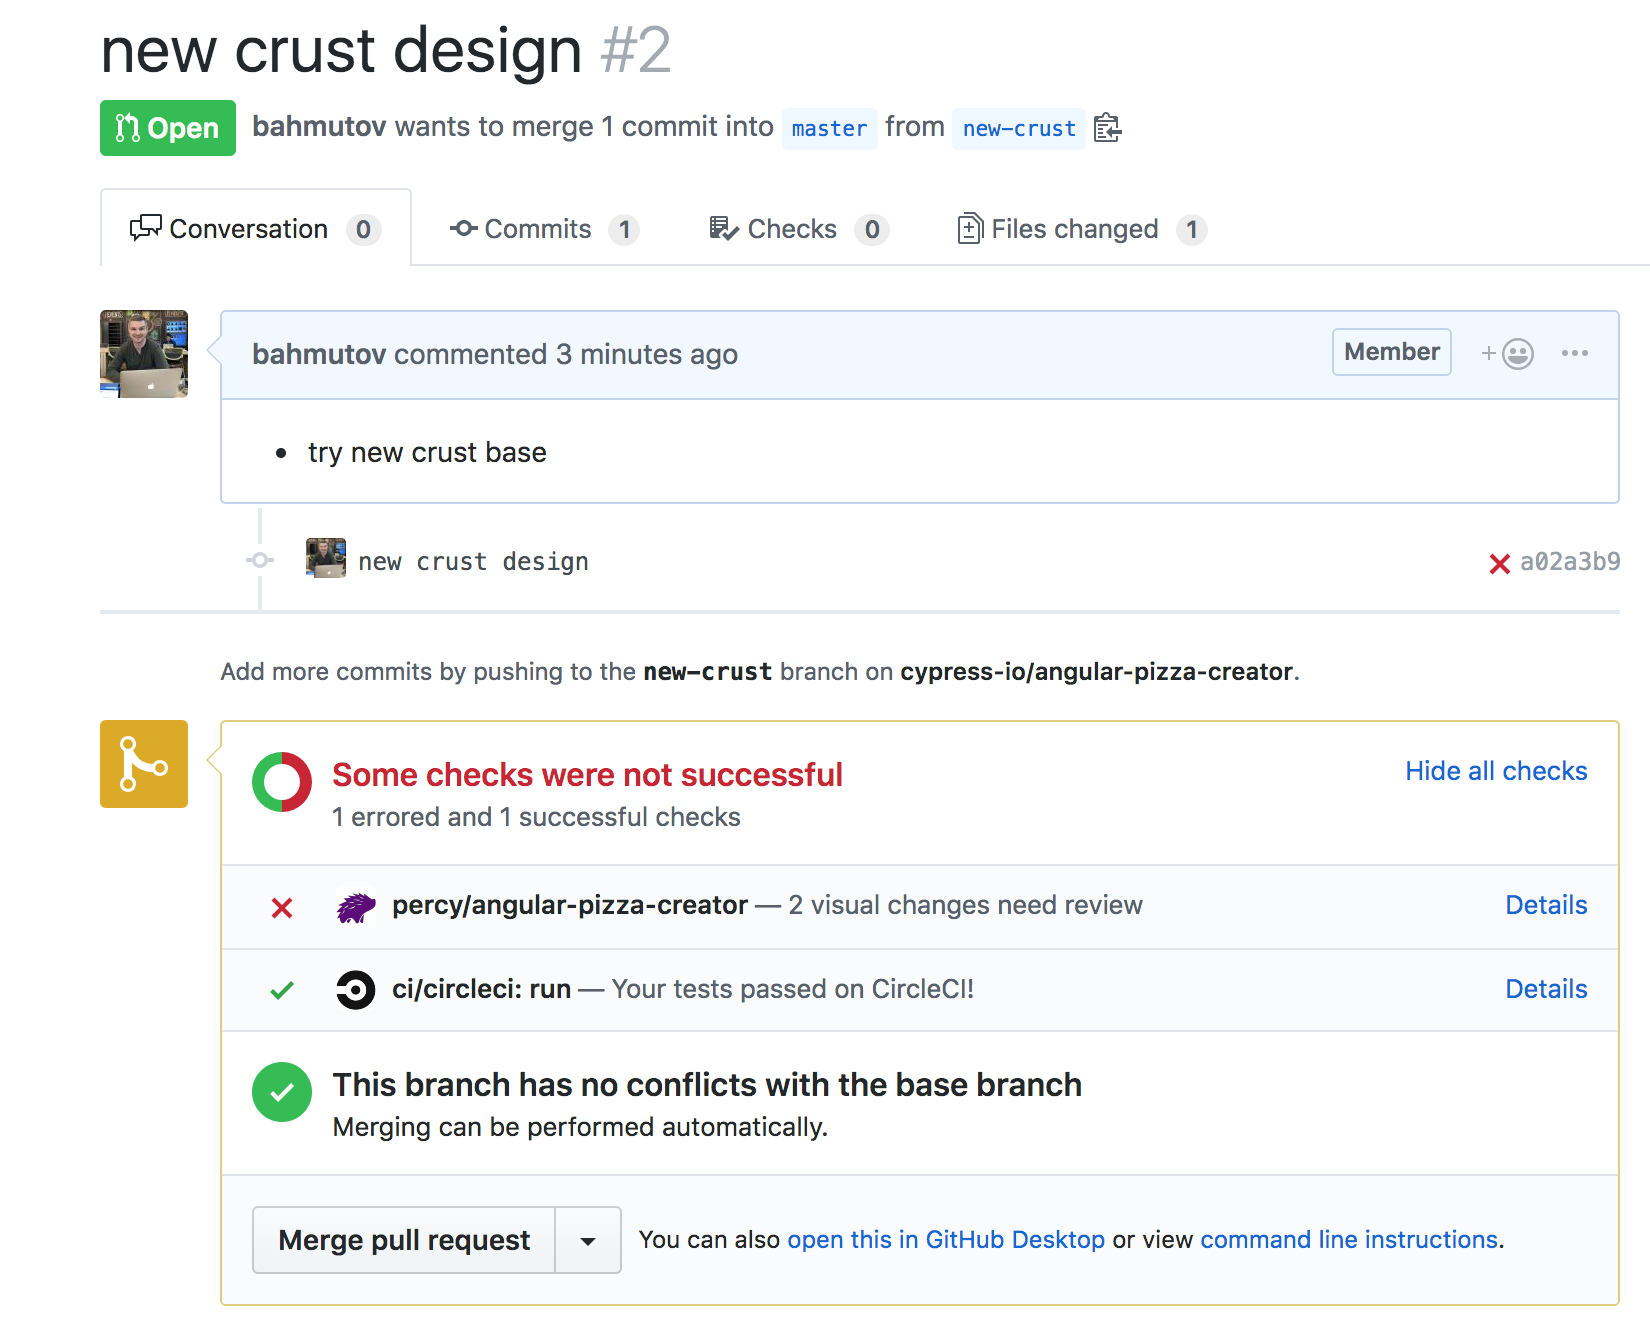 Functional tests and visual diff status for pull request